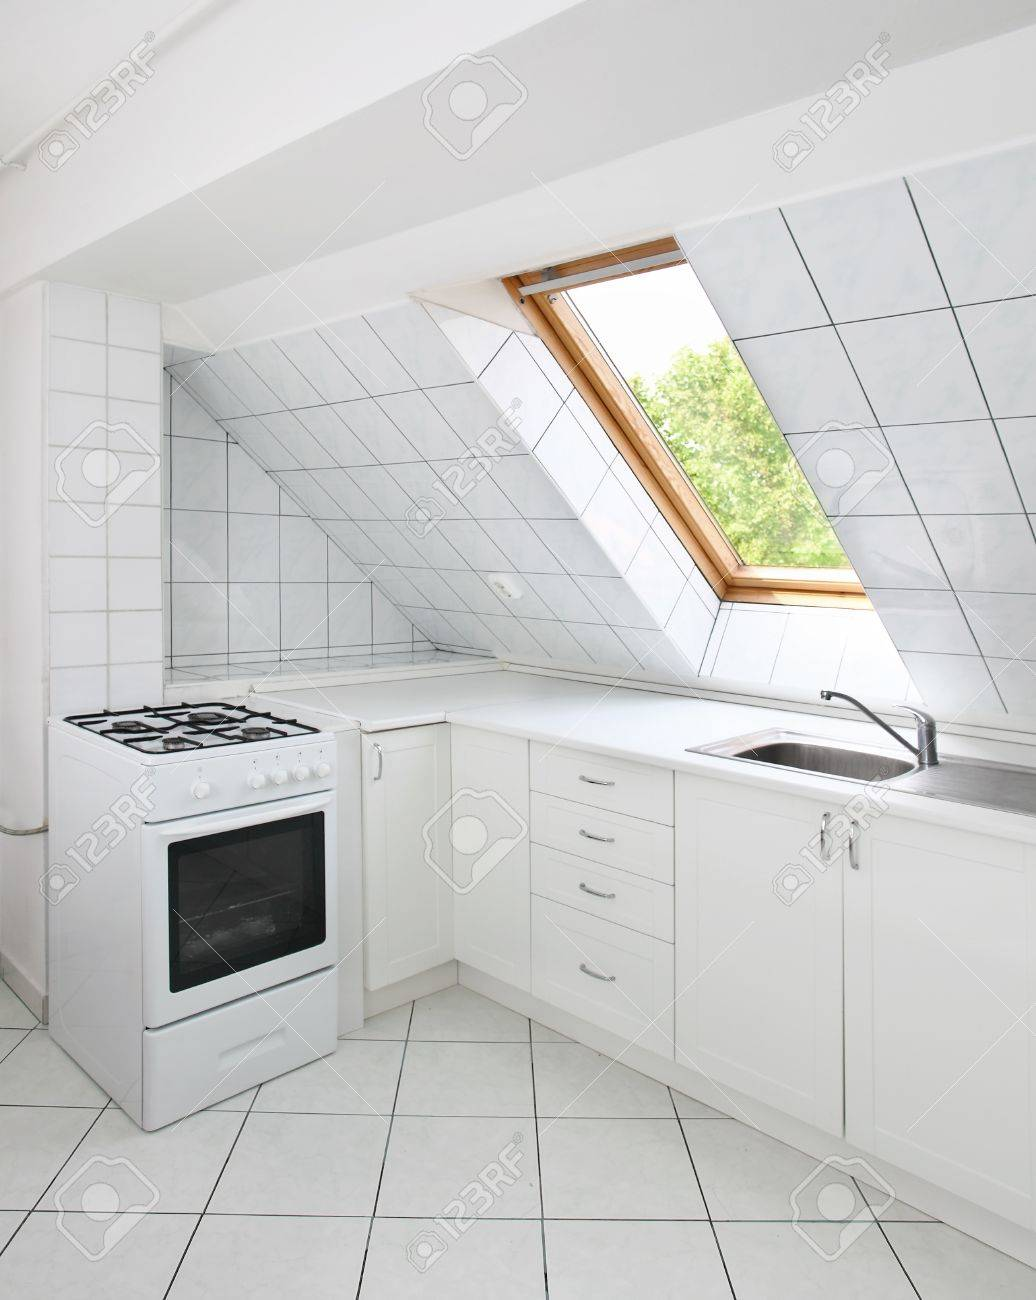 Tiled Kitchen Tiled Kitchen In Attic With Sink And Oven Stock Photo Picture And